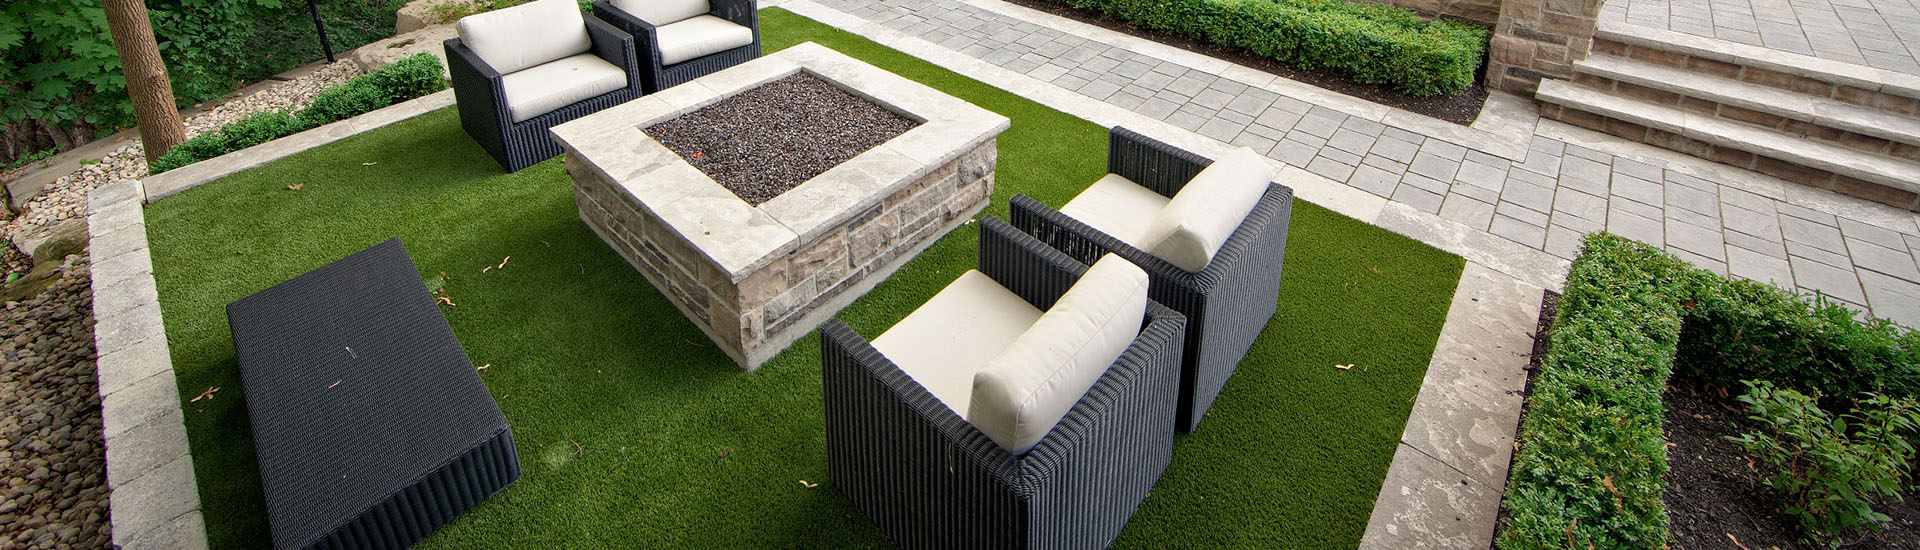 Artificial grass for Decoration, Landscape Turf